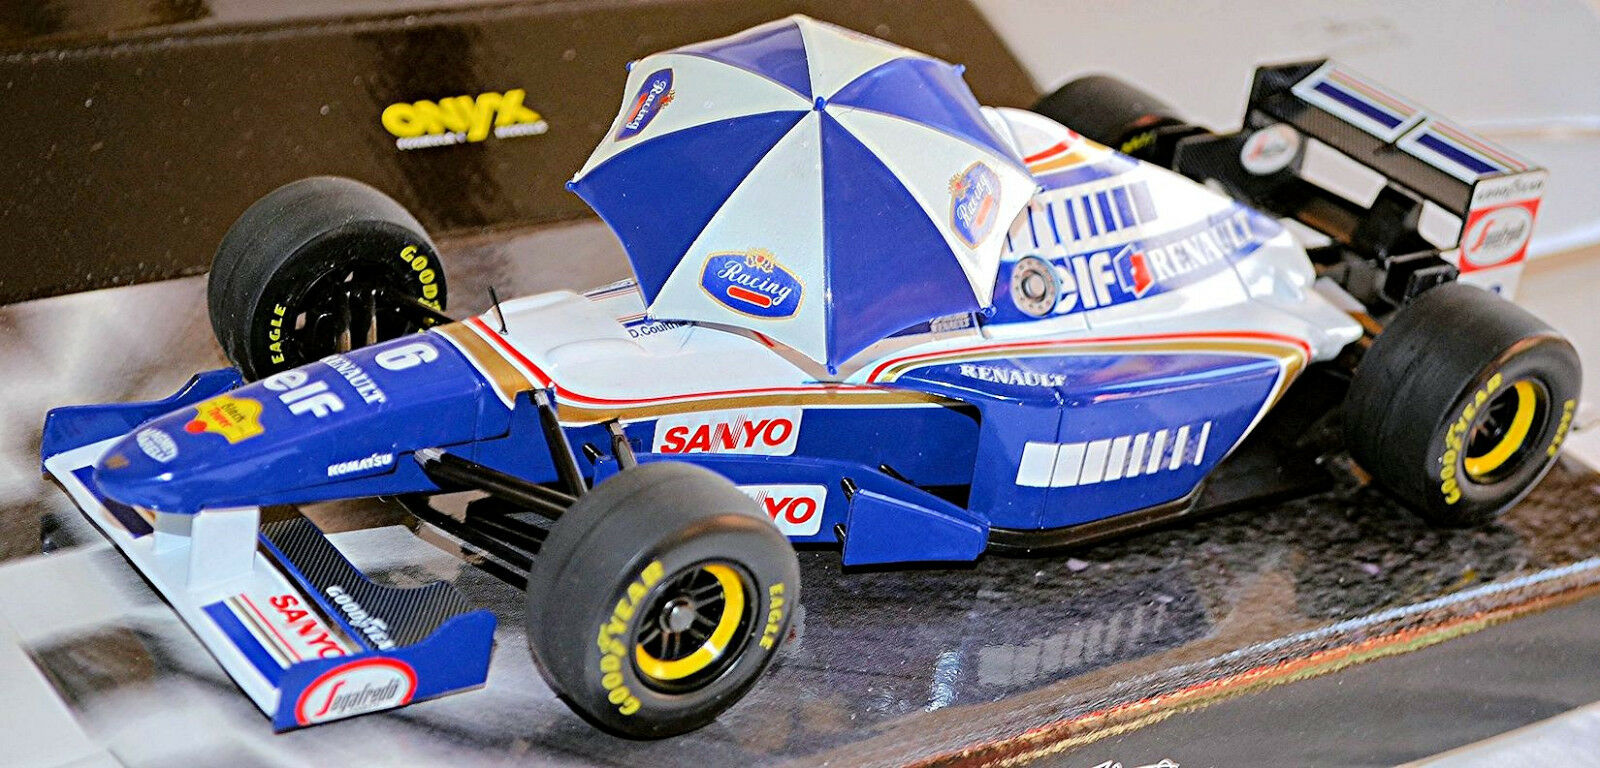 Williams FW 17 RENAULT 1995 f1 David Coulthard  6 WITH PARASOL 1:18 Onyx